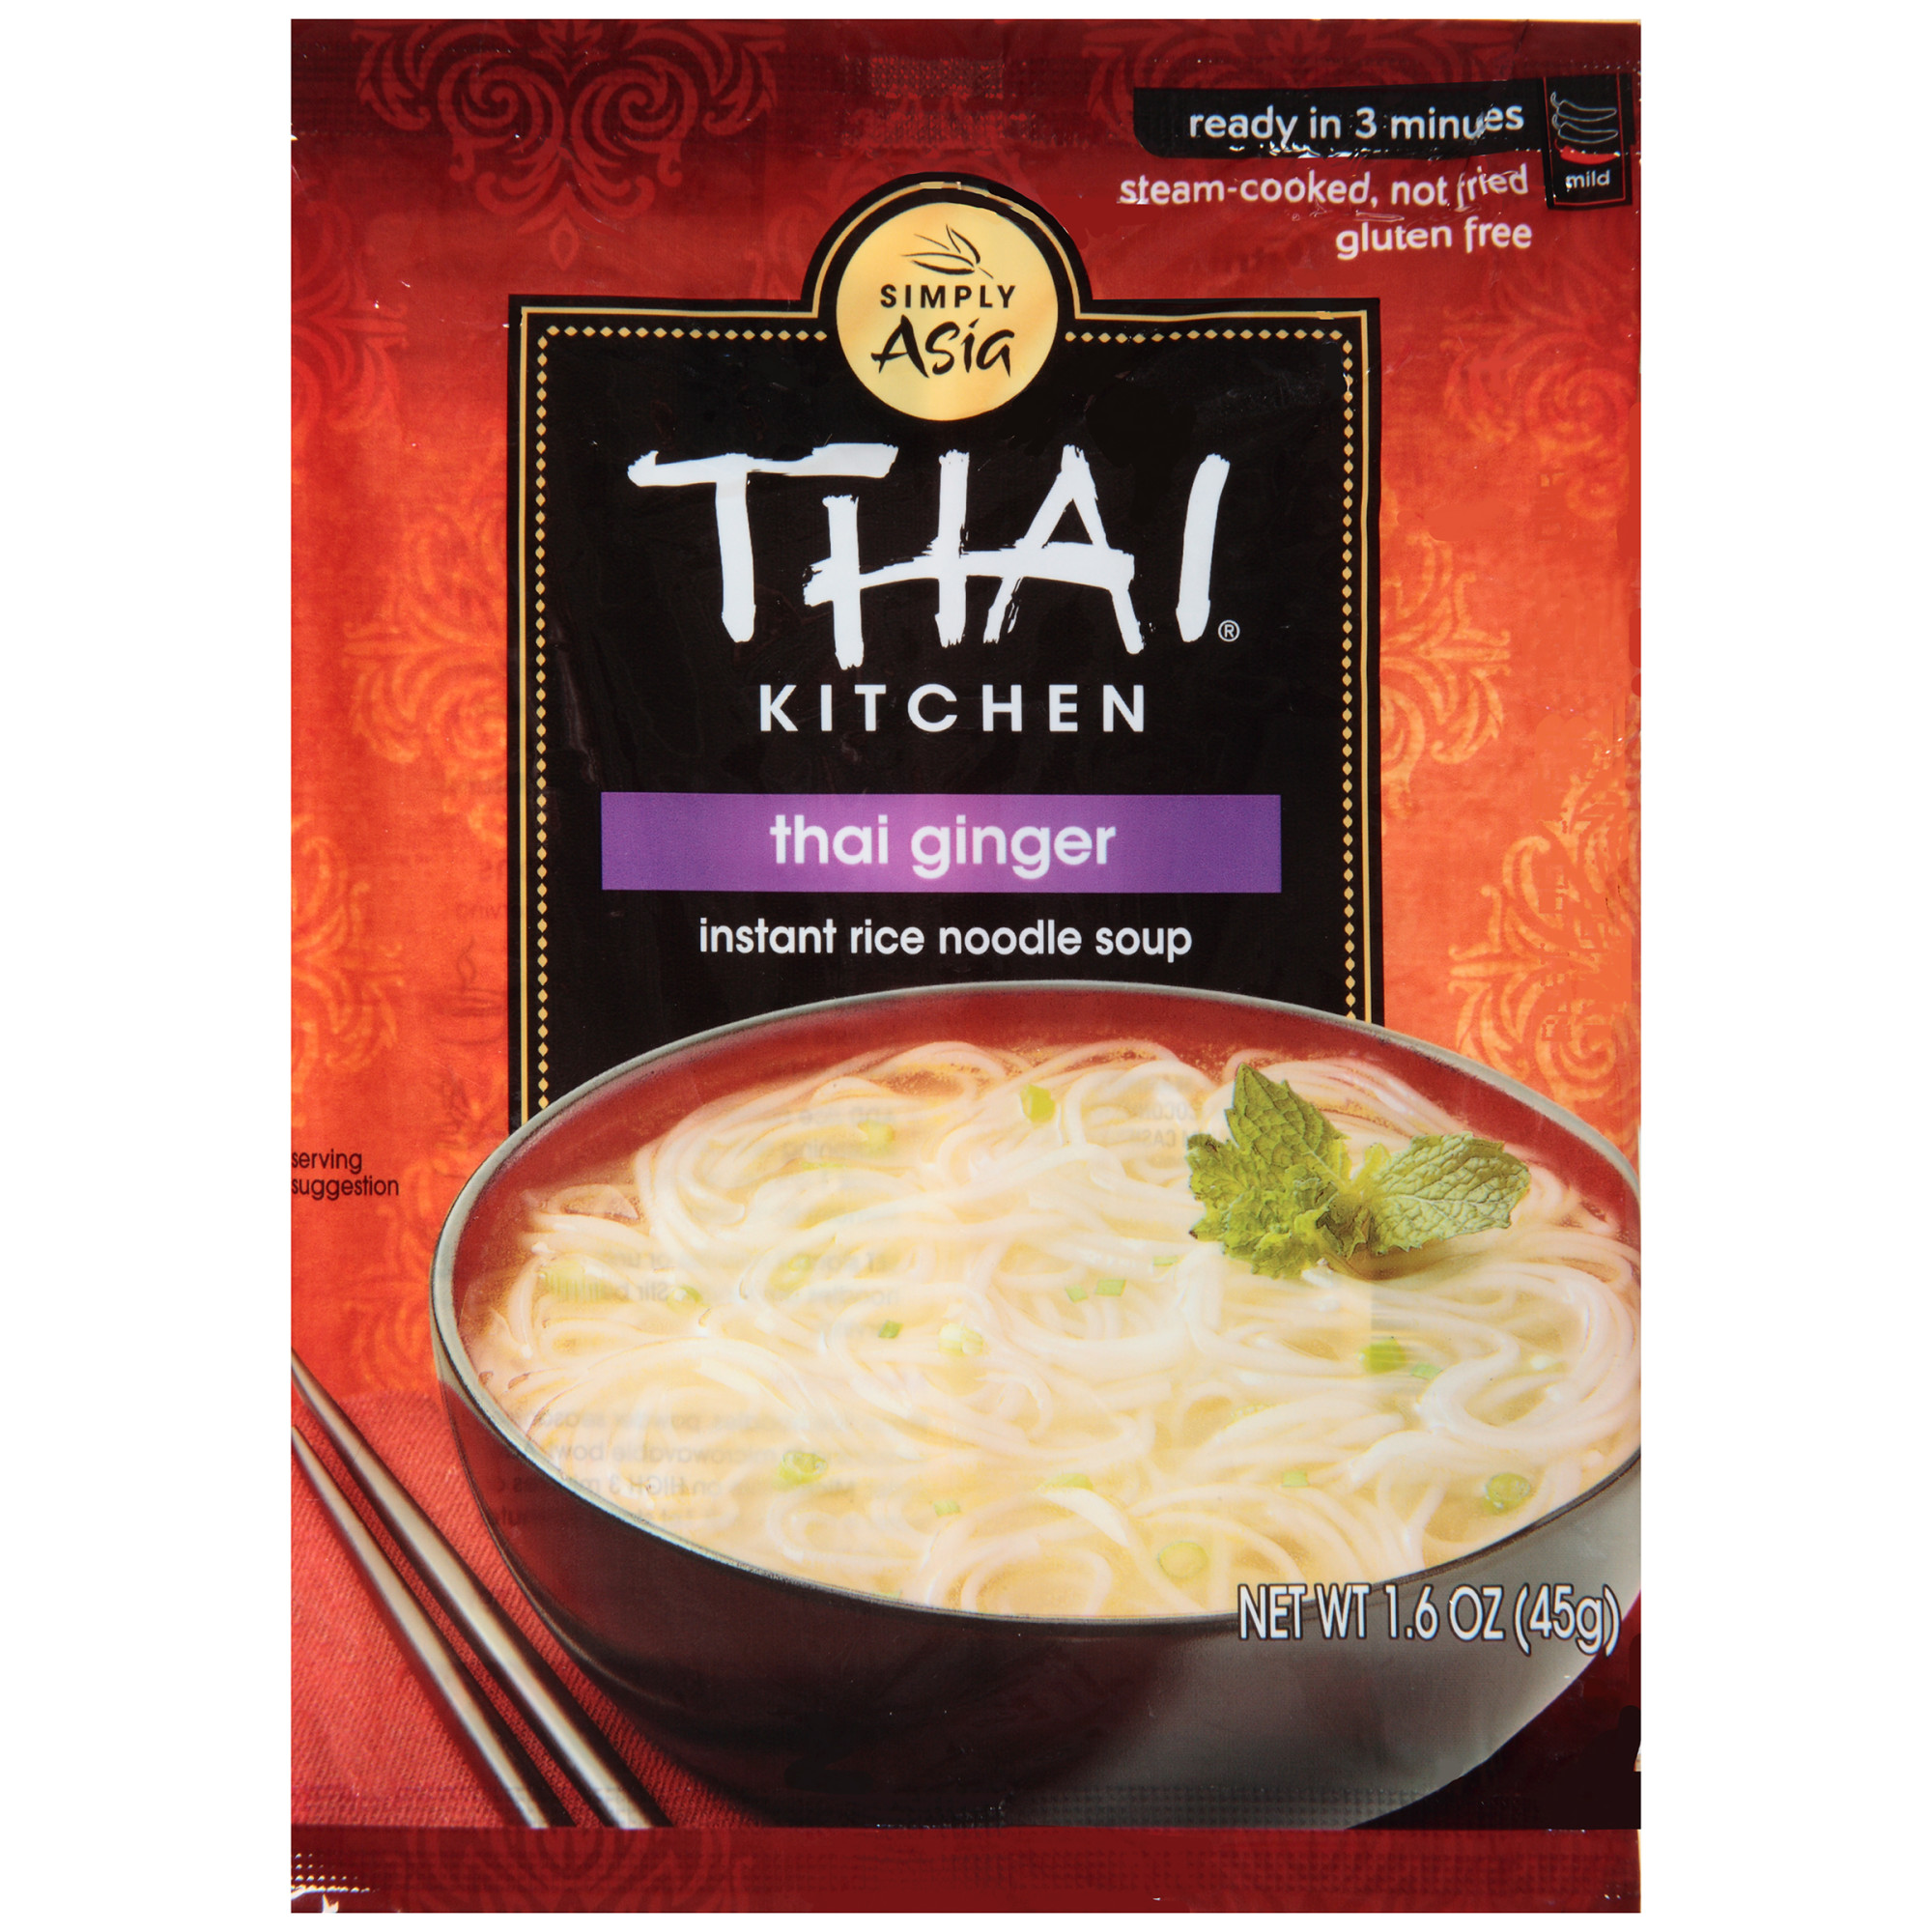 Thai Kitchen Gluten Free Thai Ginger Instant Rice Noodle Soup, 1.6 oz